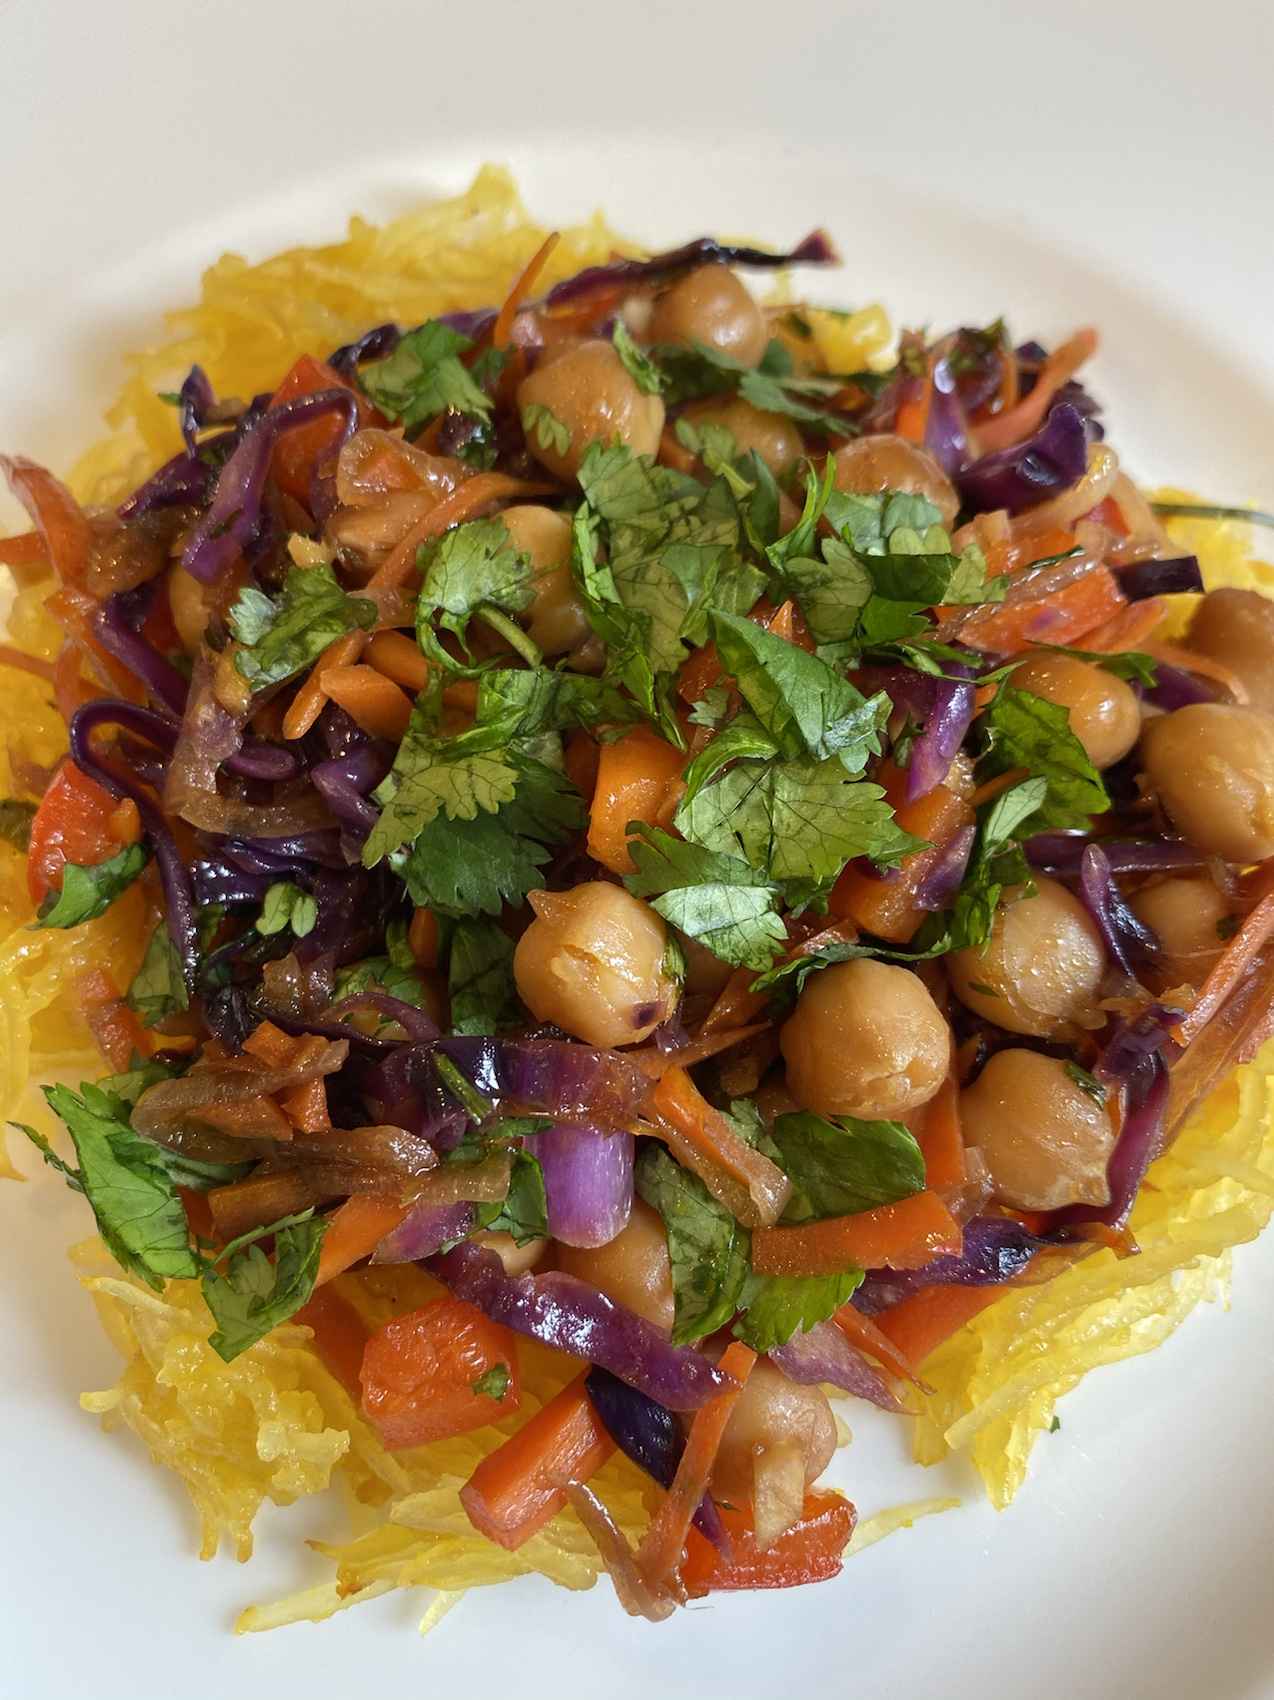 Roasted Spaghetti Squash Stir-Fry